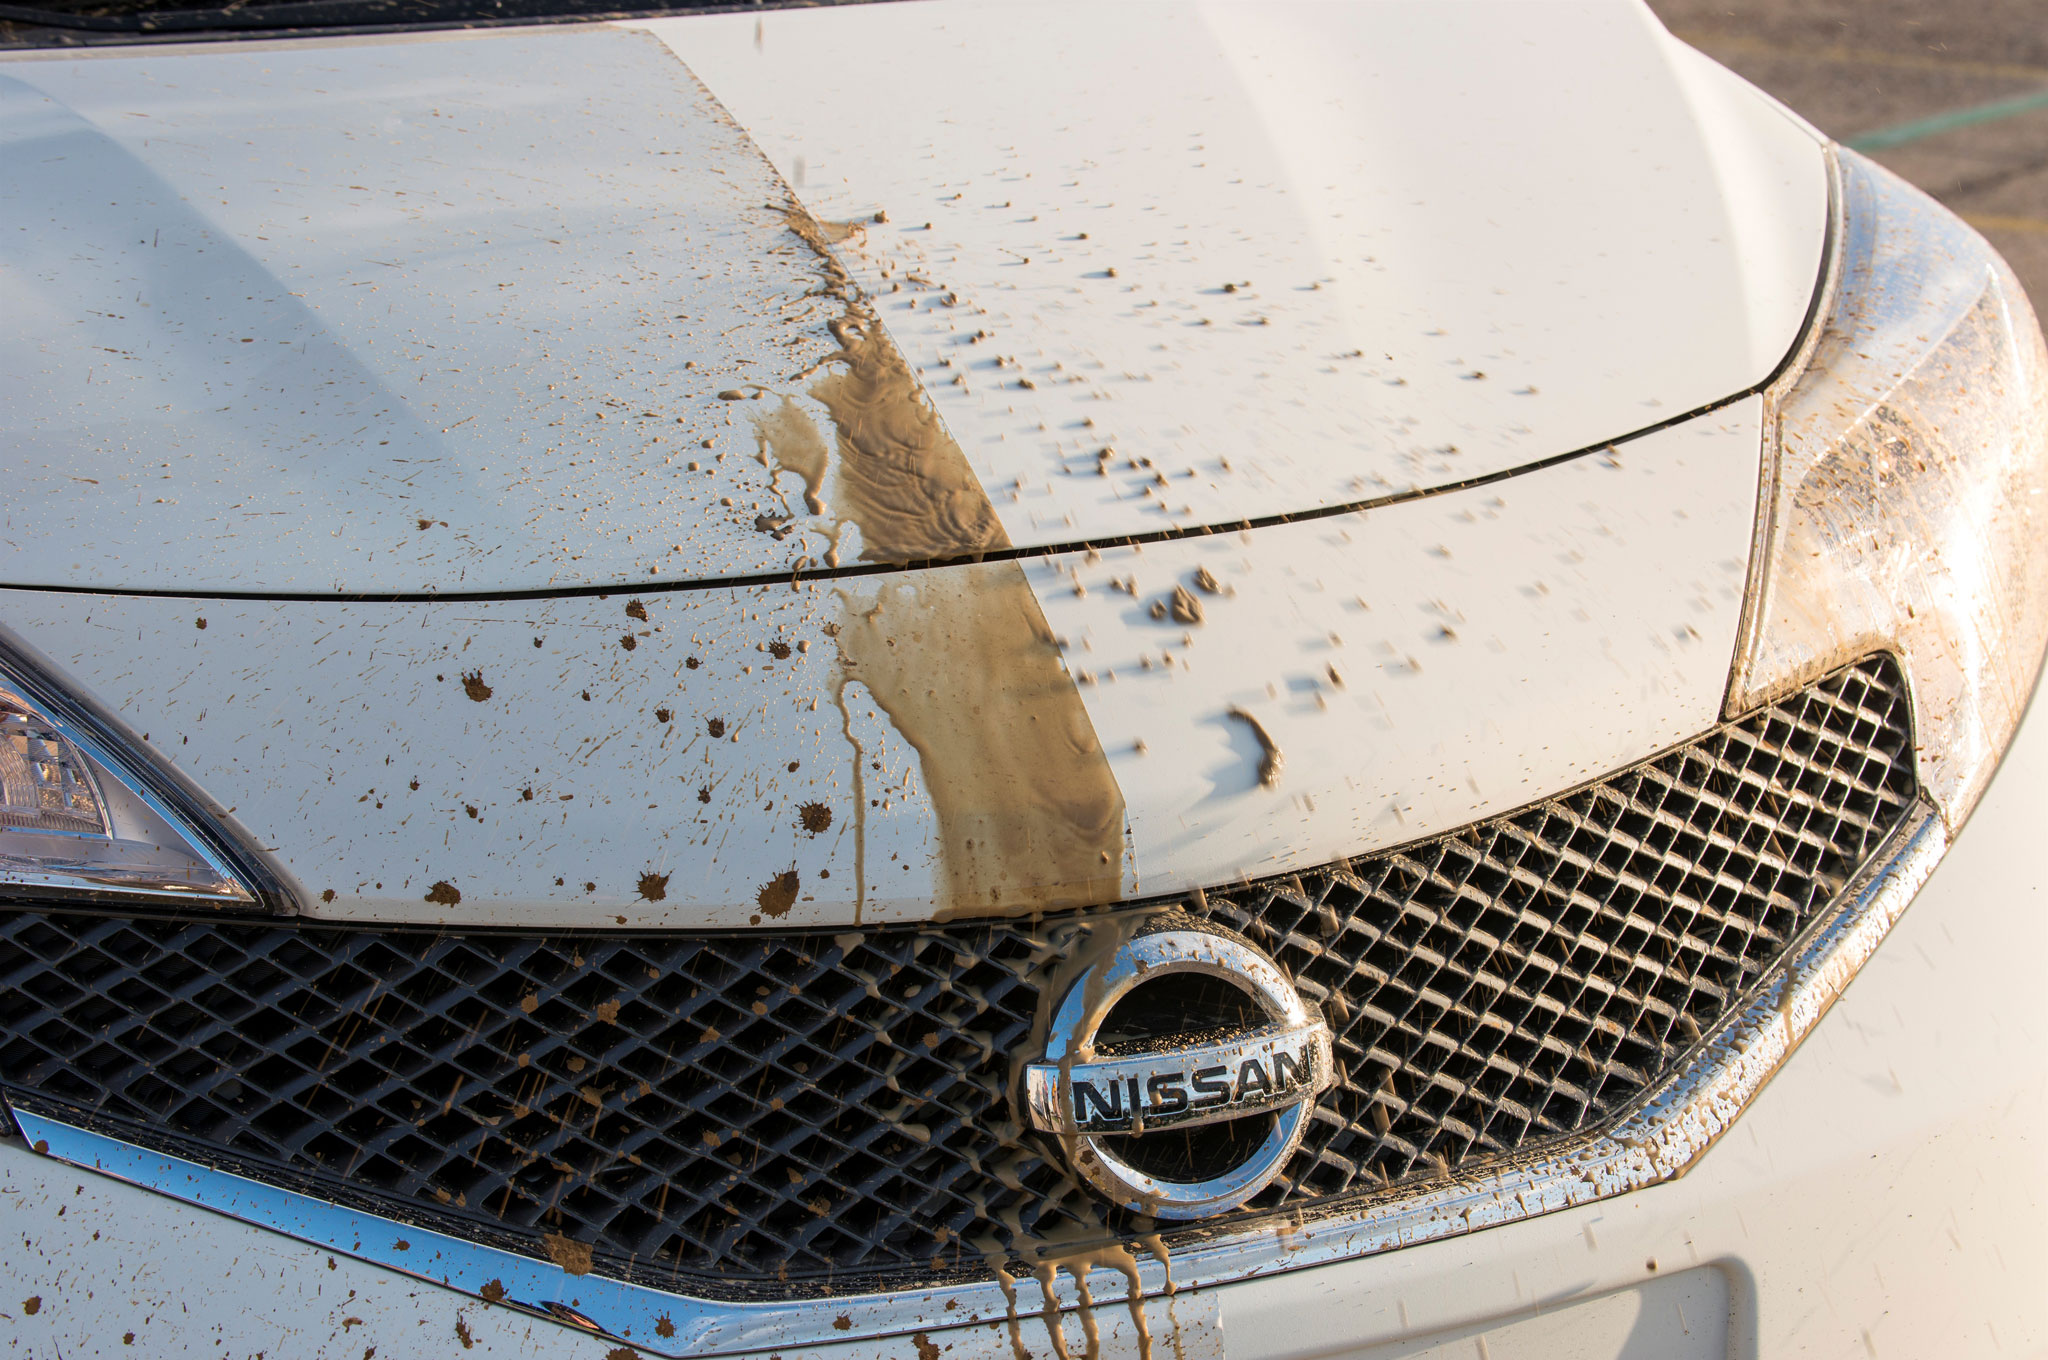 Nissan Note Self Cleaning Car Prototype Hood1